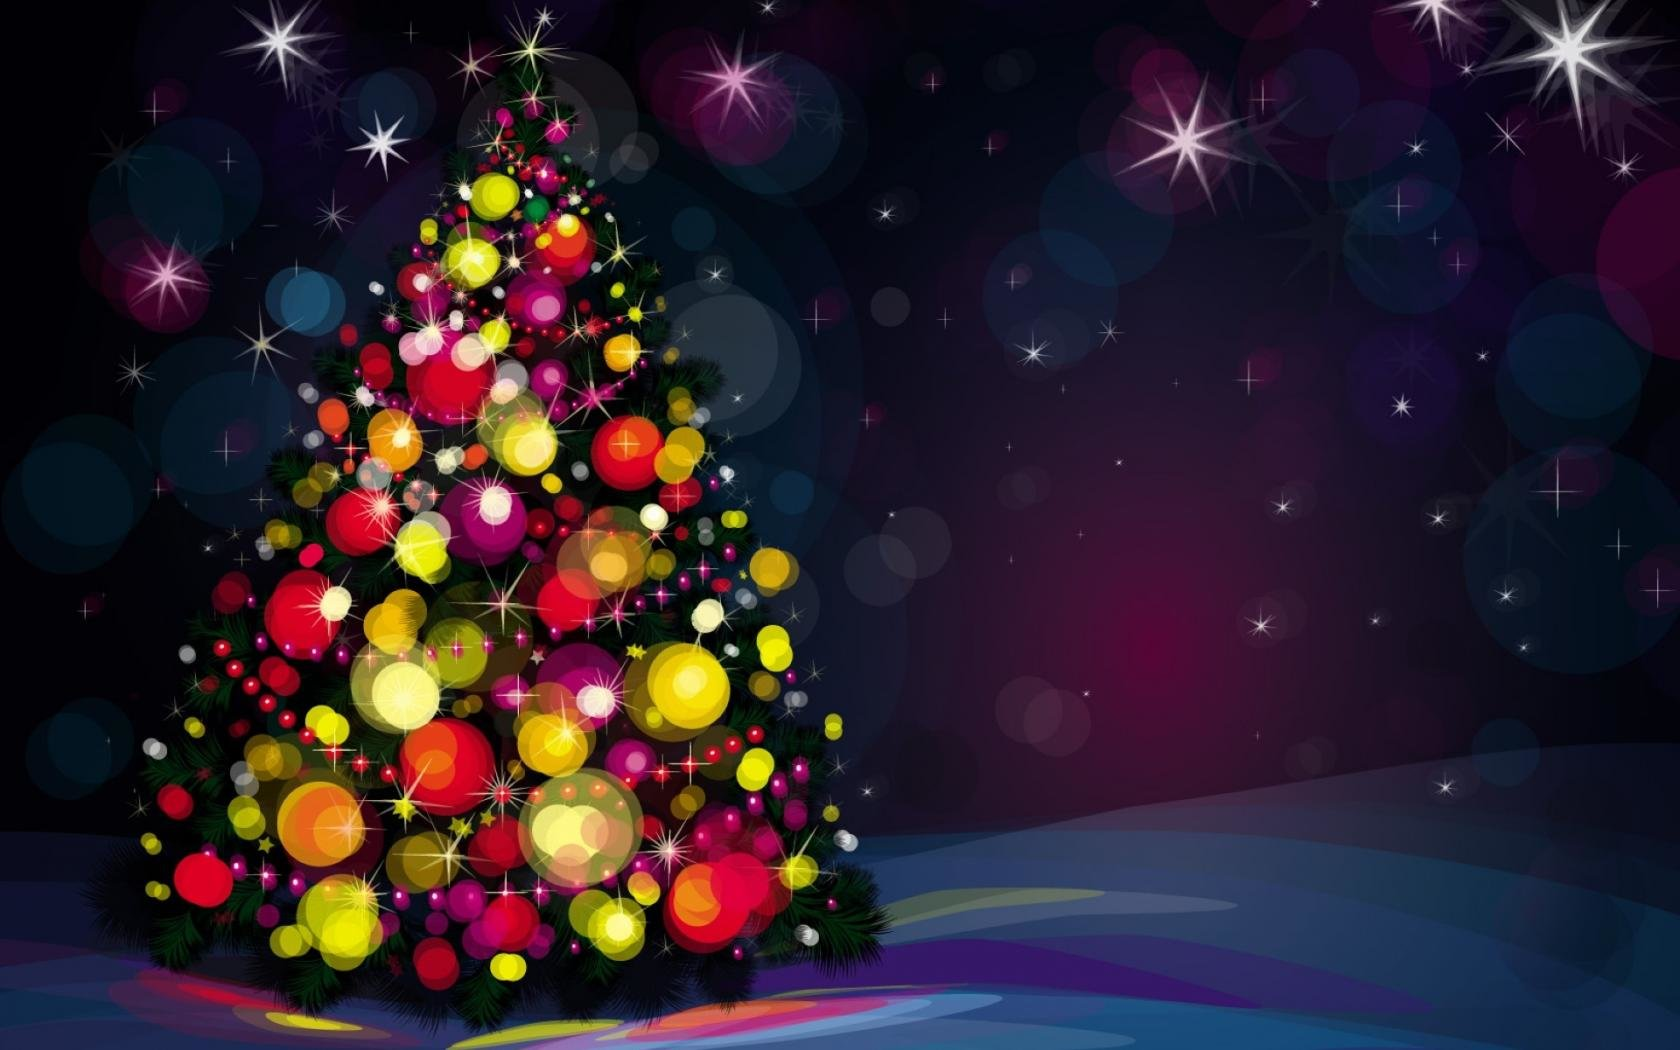 Christmas Tree Wallpapers 1680x1050 Desktop Backgrounds